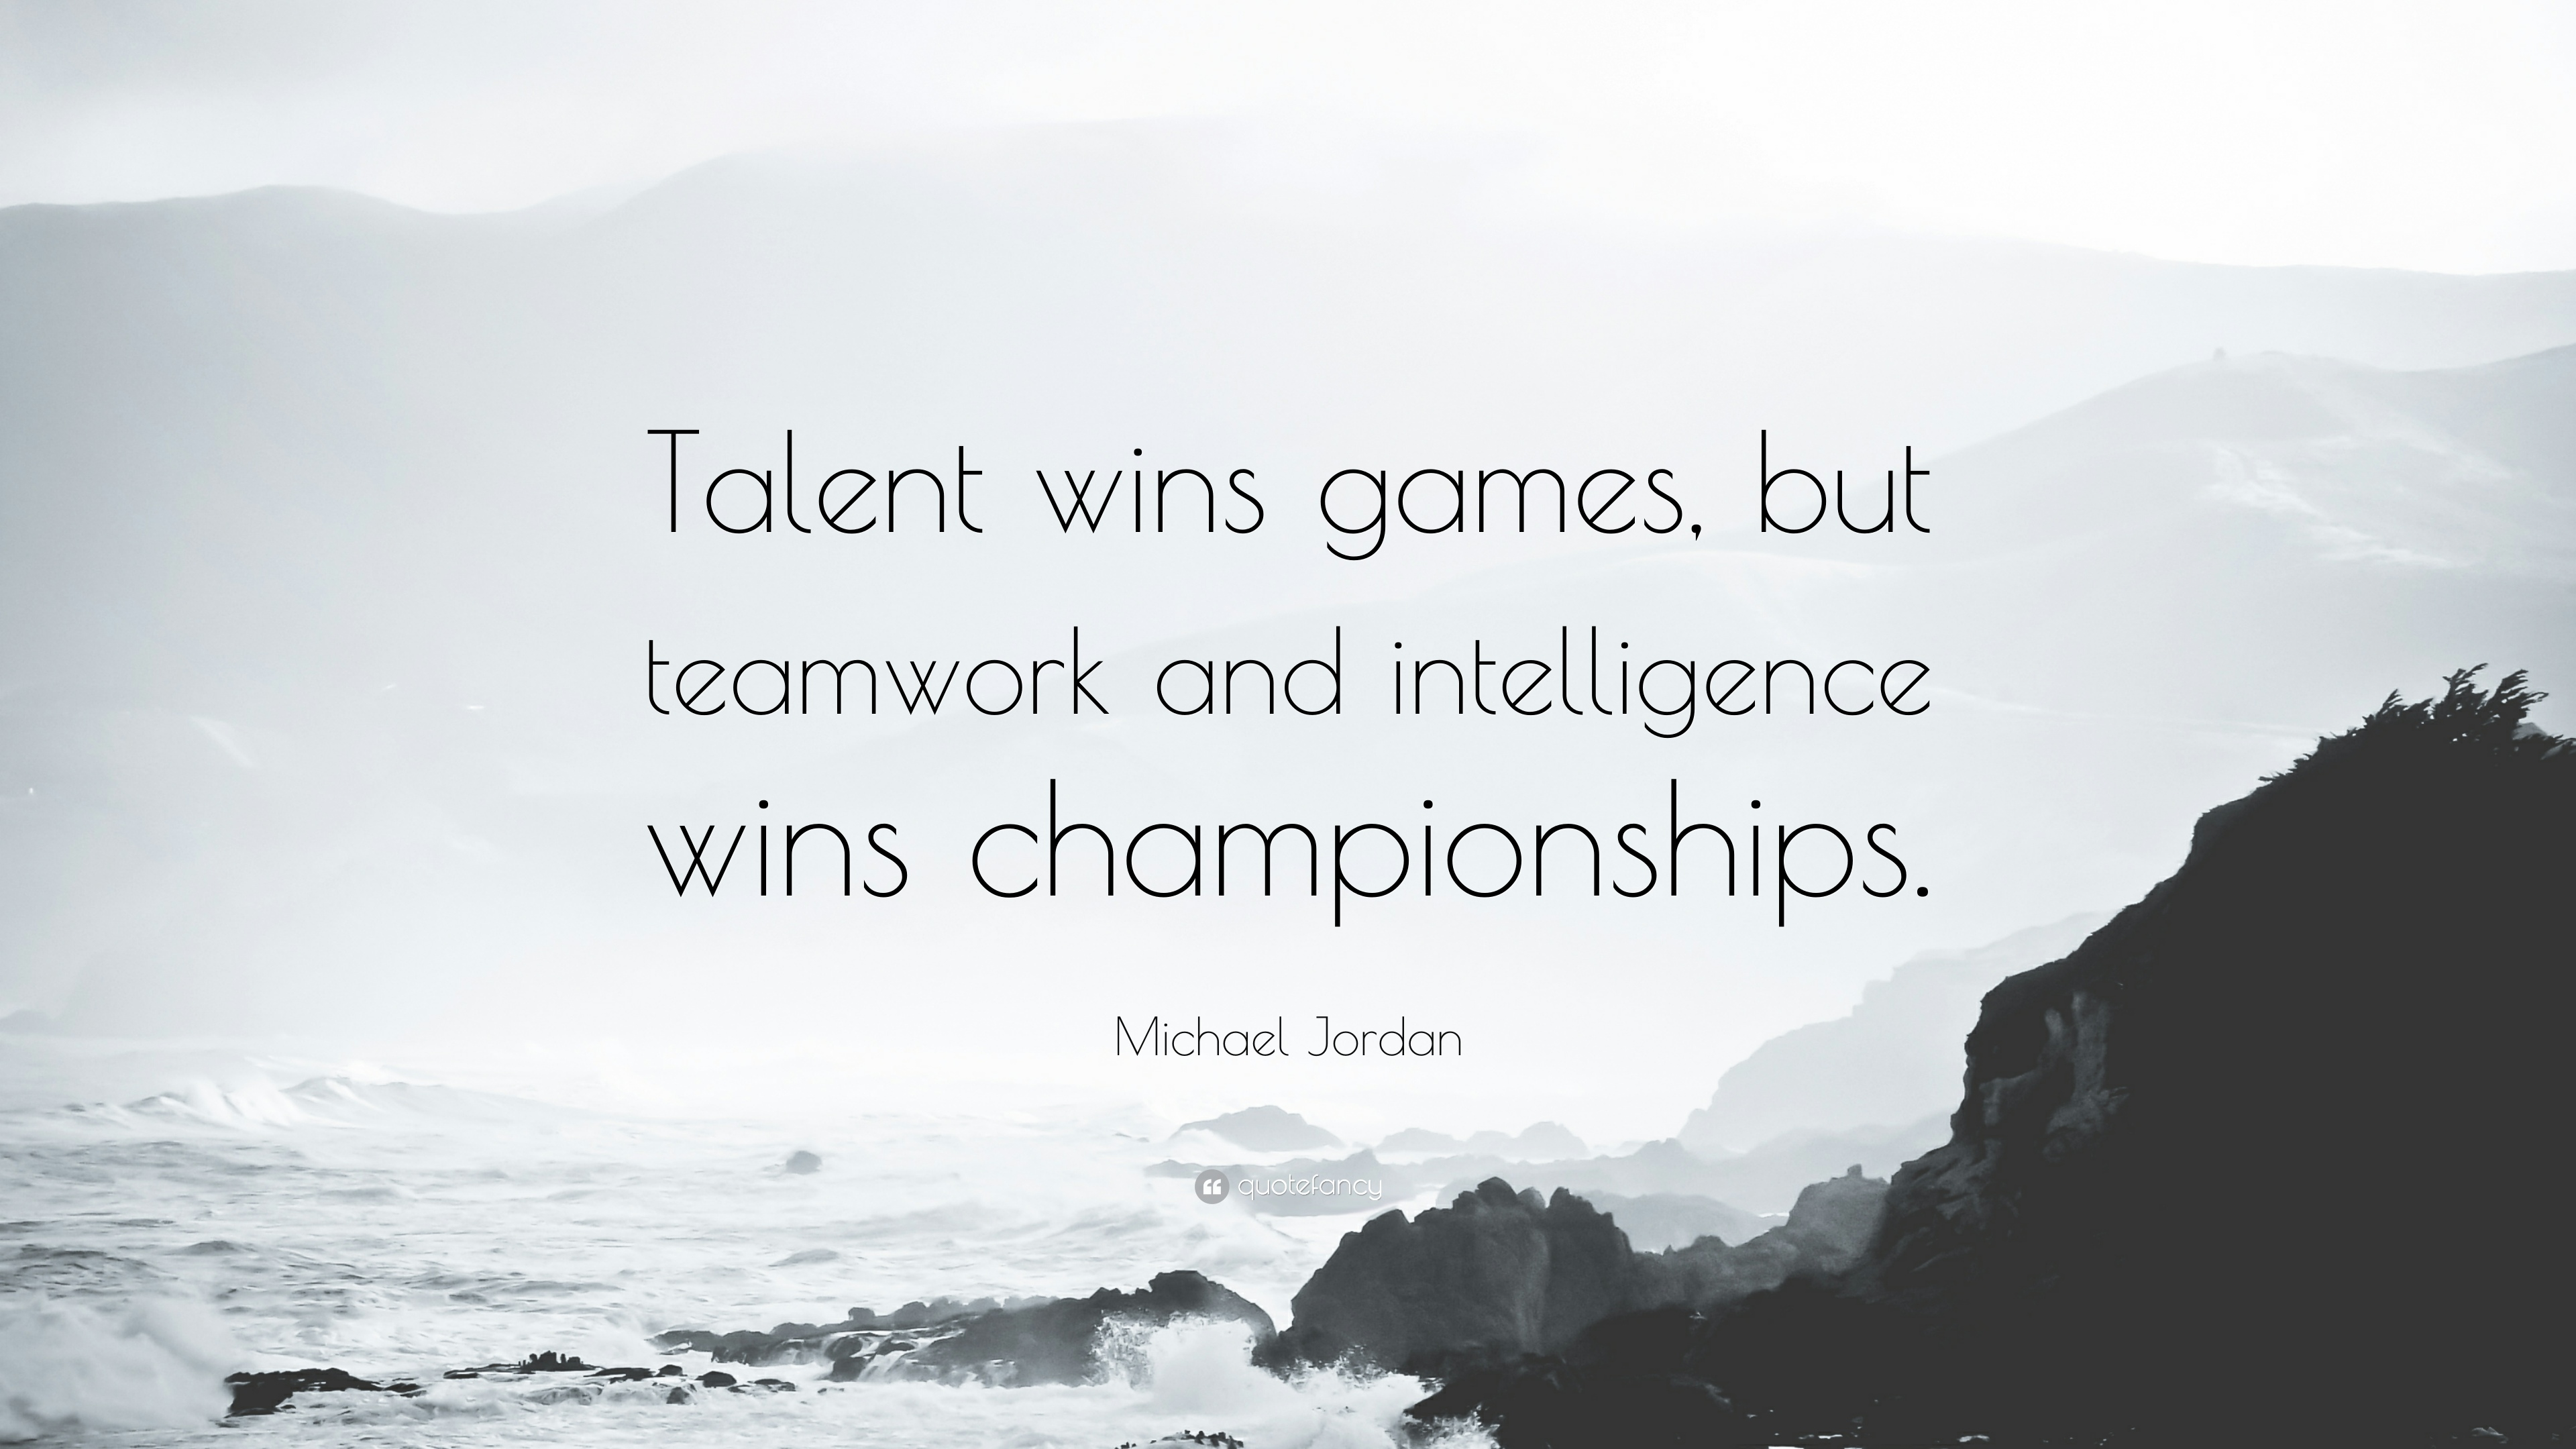 talent wins games but teamwork and intelligence wins championships essay